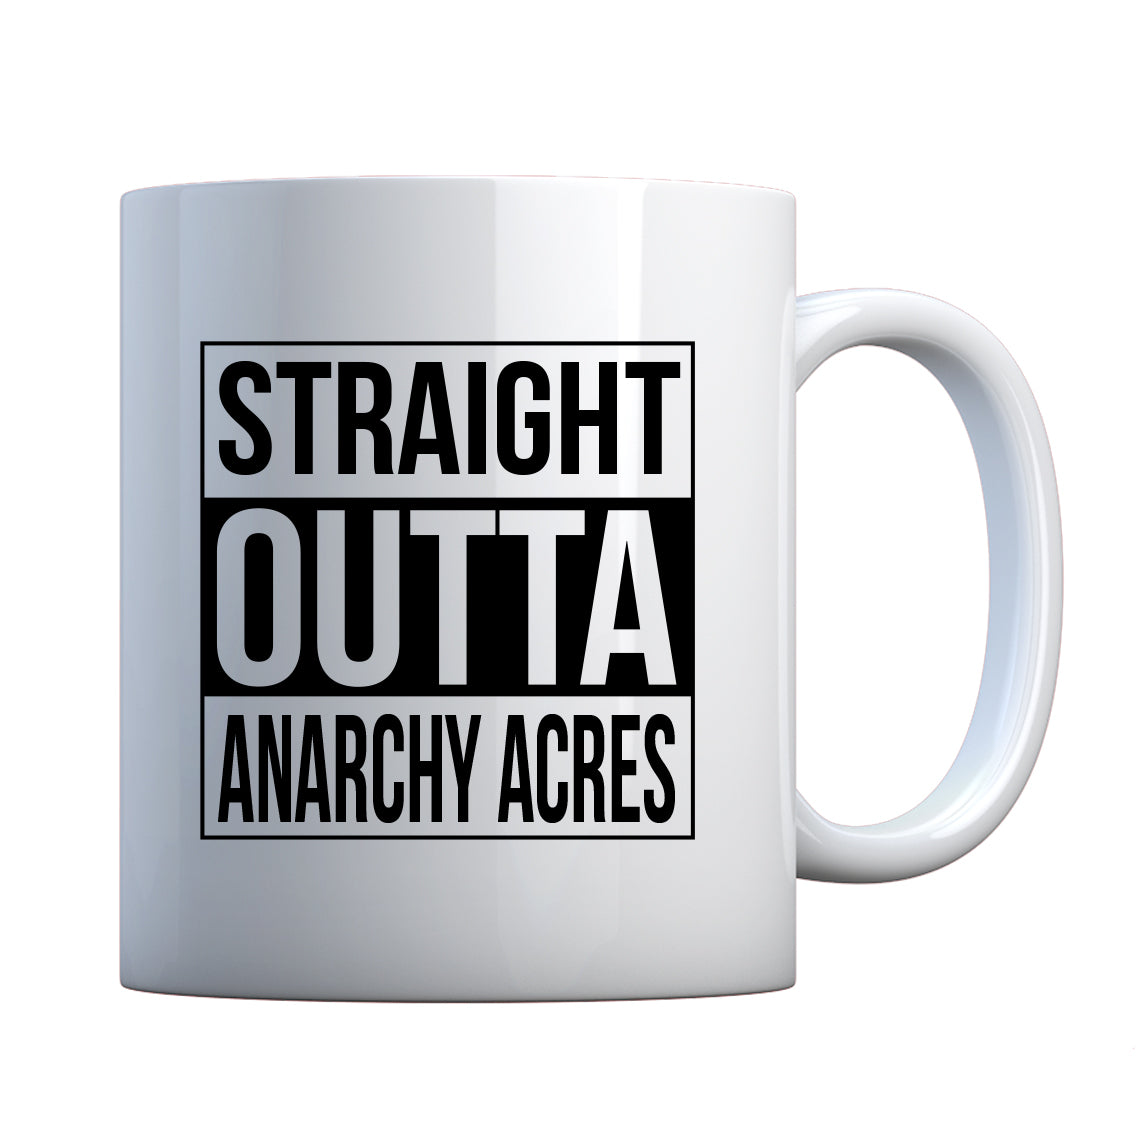 Mug Straight Outta Anarchy Acres Ceramic Gift Mug